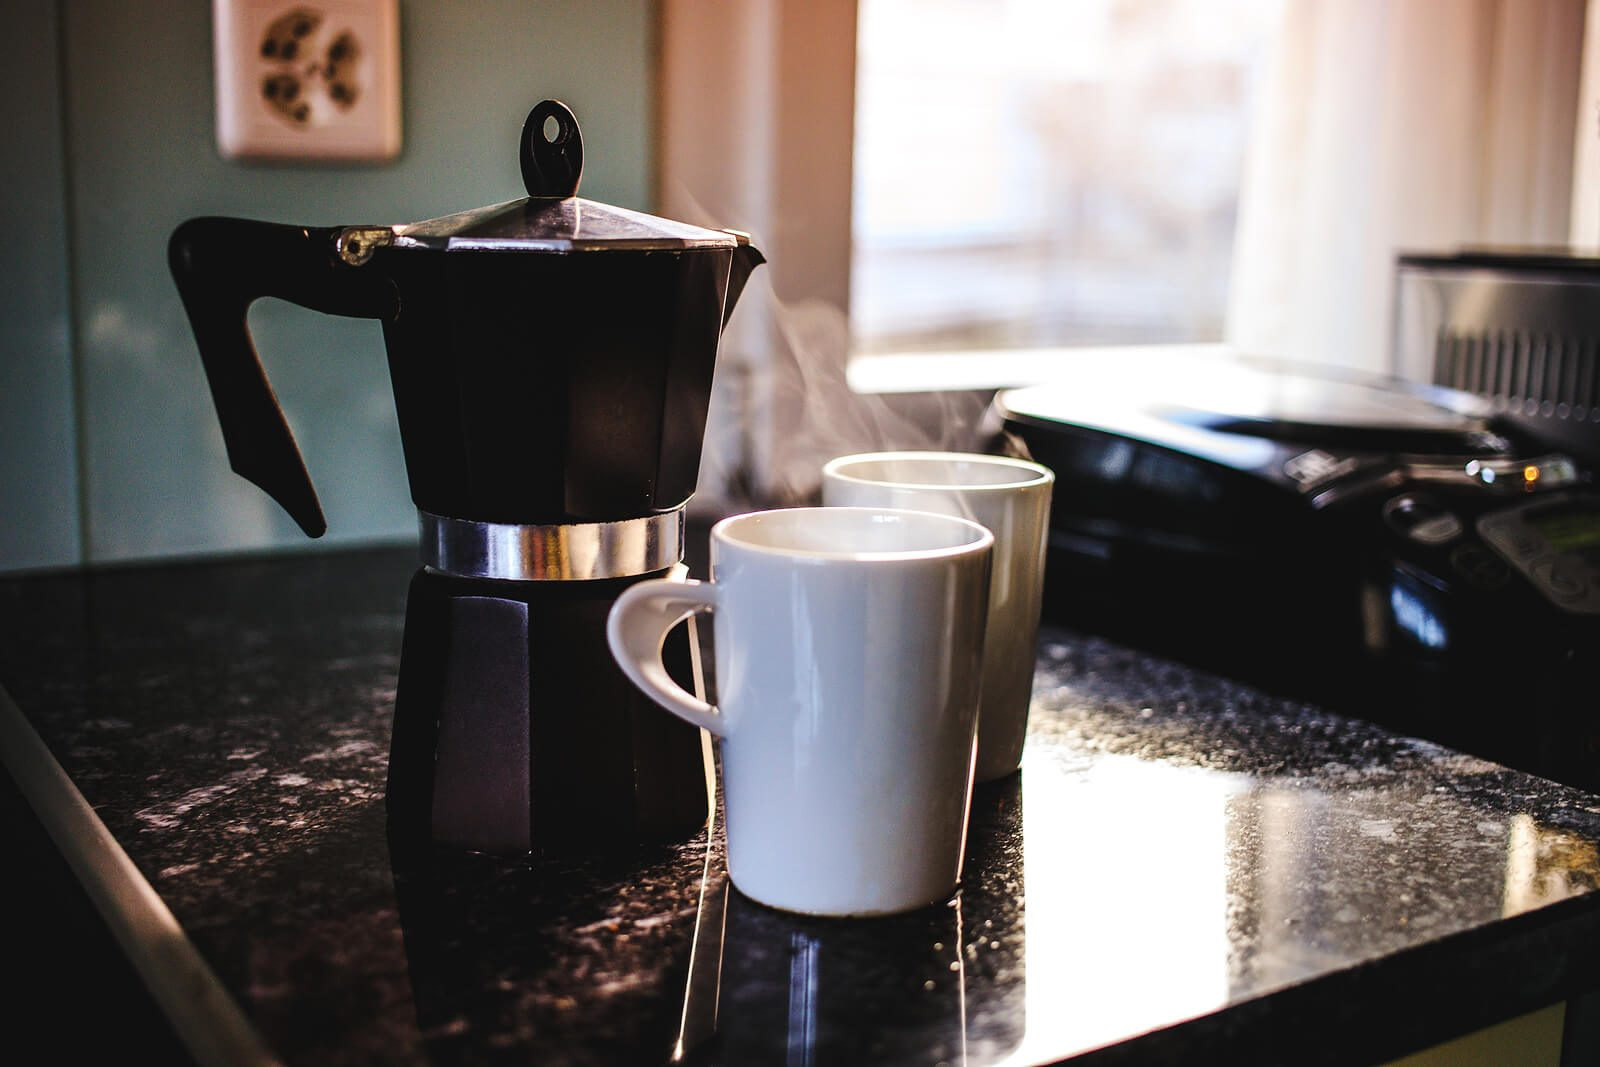 How to Make Coffee With a Moka Pot – The Complete Guide